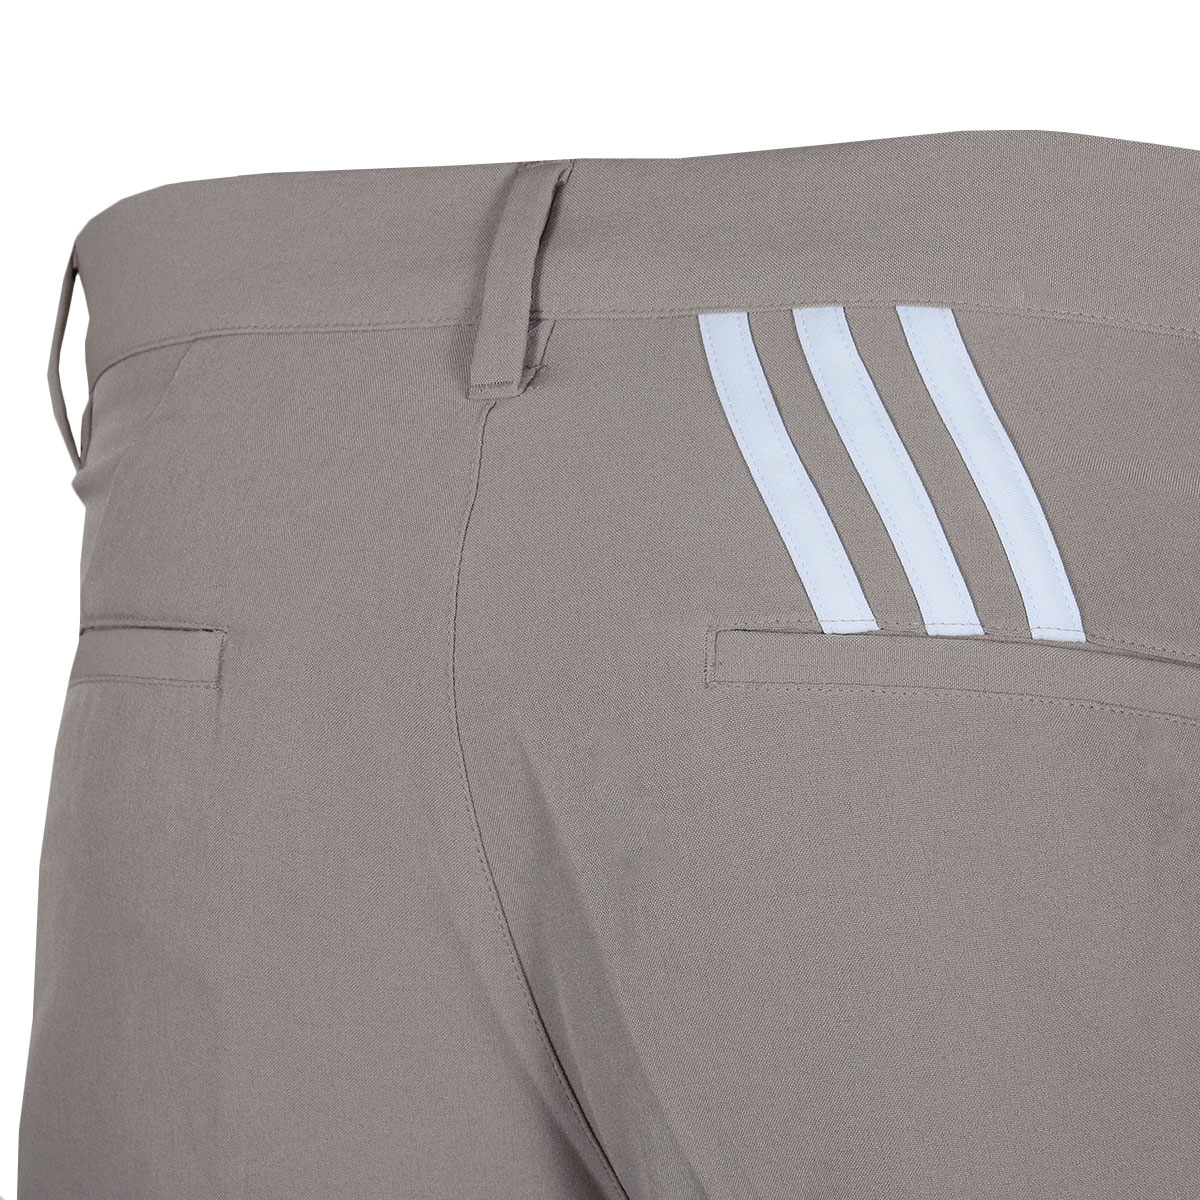 adidas-Golf-Mens-Ultimate-3-Stripes-Stretch-Pant-Trousers-44-OFF-RRP Indexbild 33